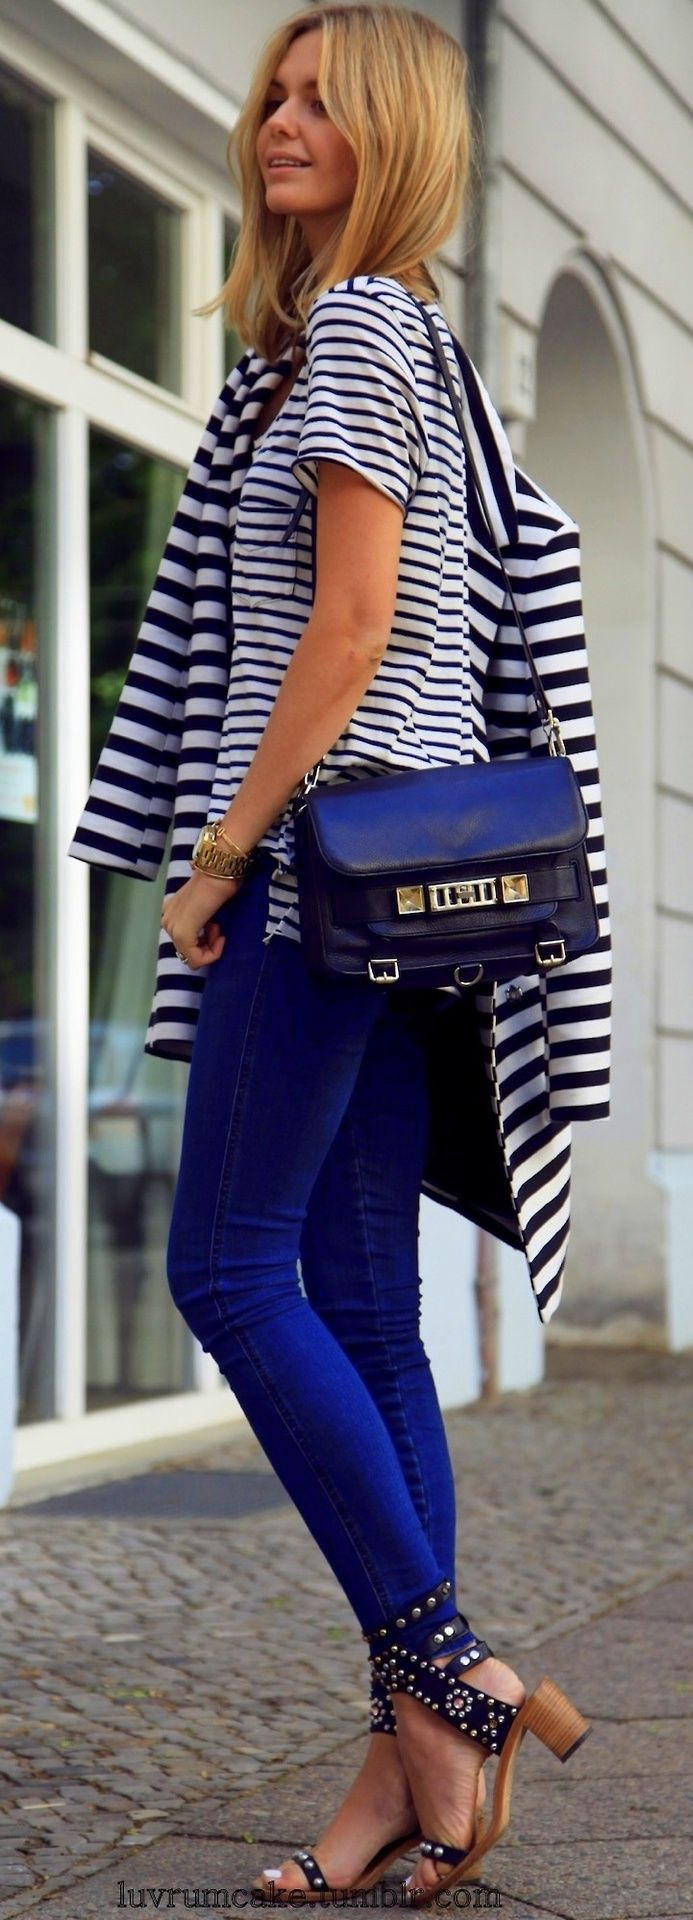 My style late summer ~ early fall ~ Stripes & Isabel Marat